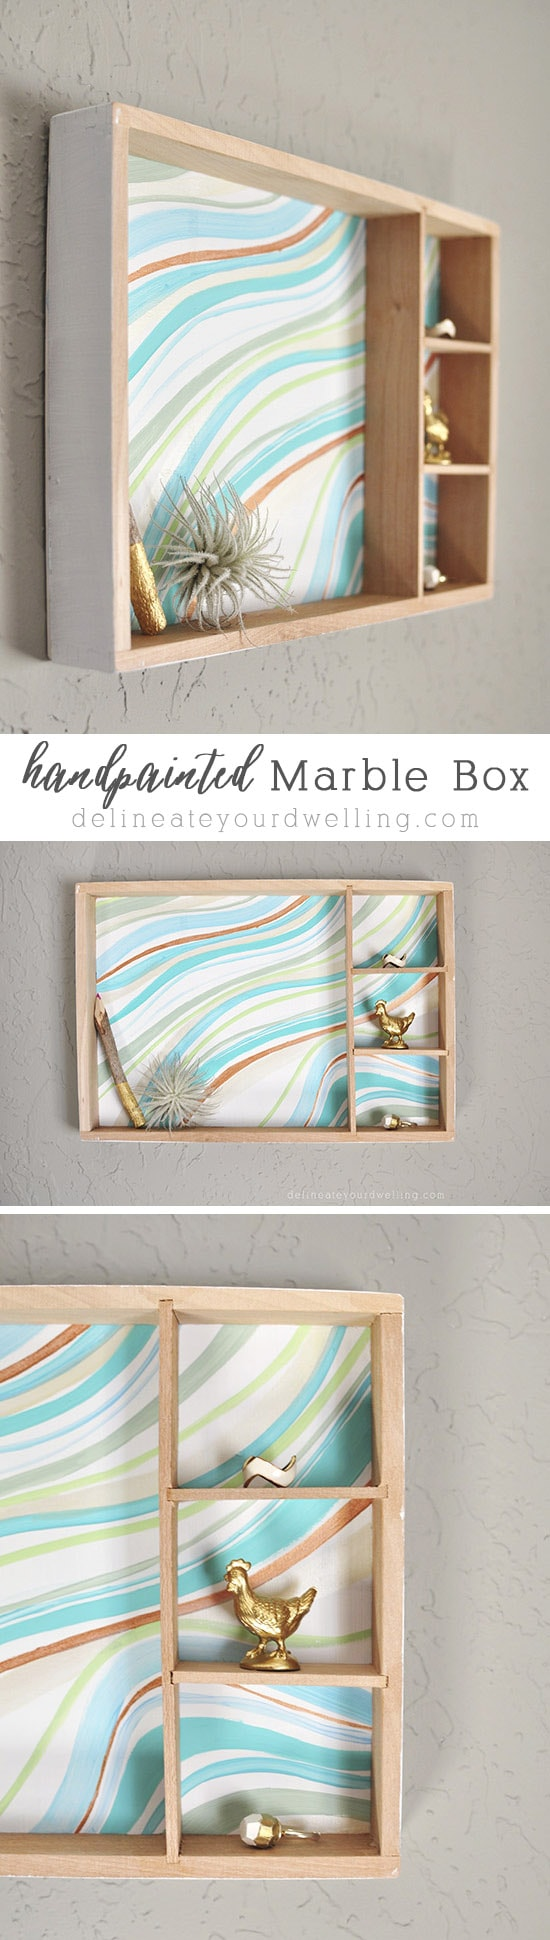 Hand Marble painted Box, Delineateyourdwelling.com